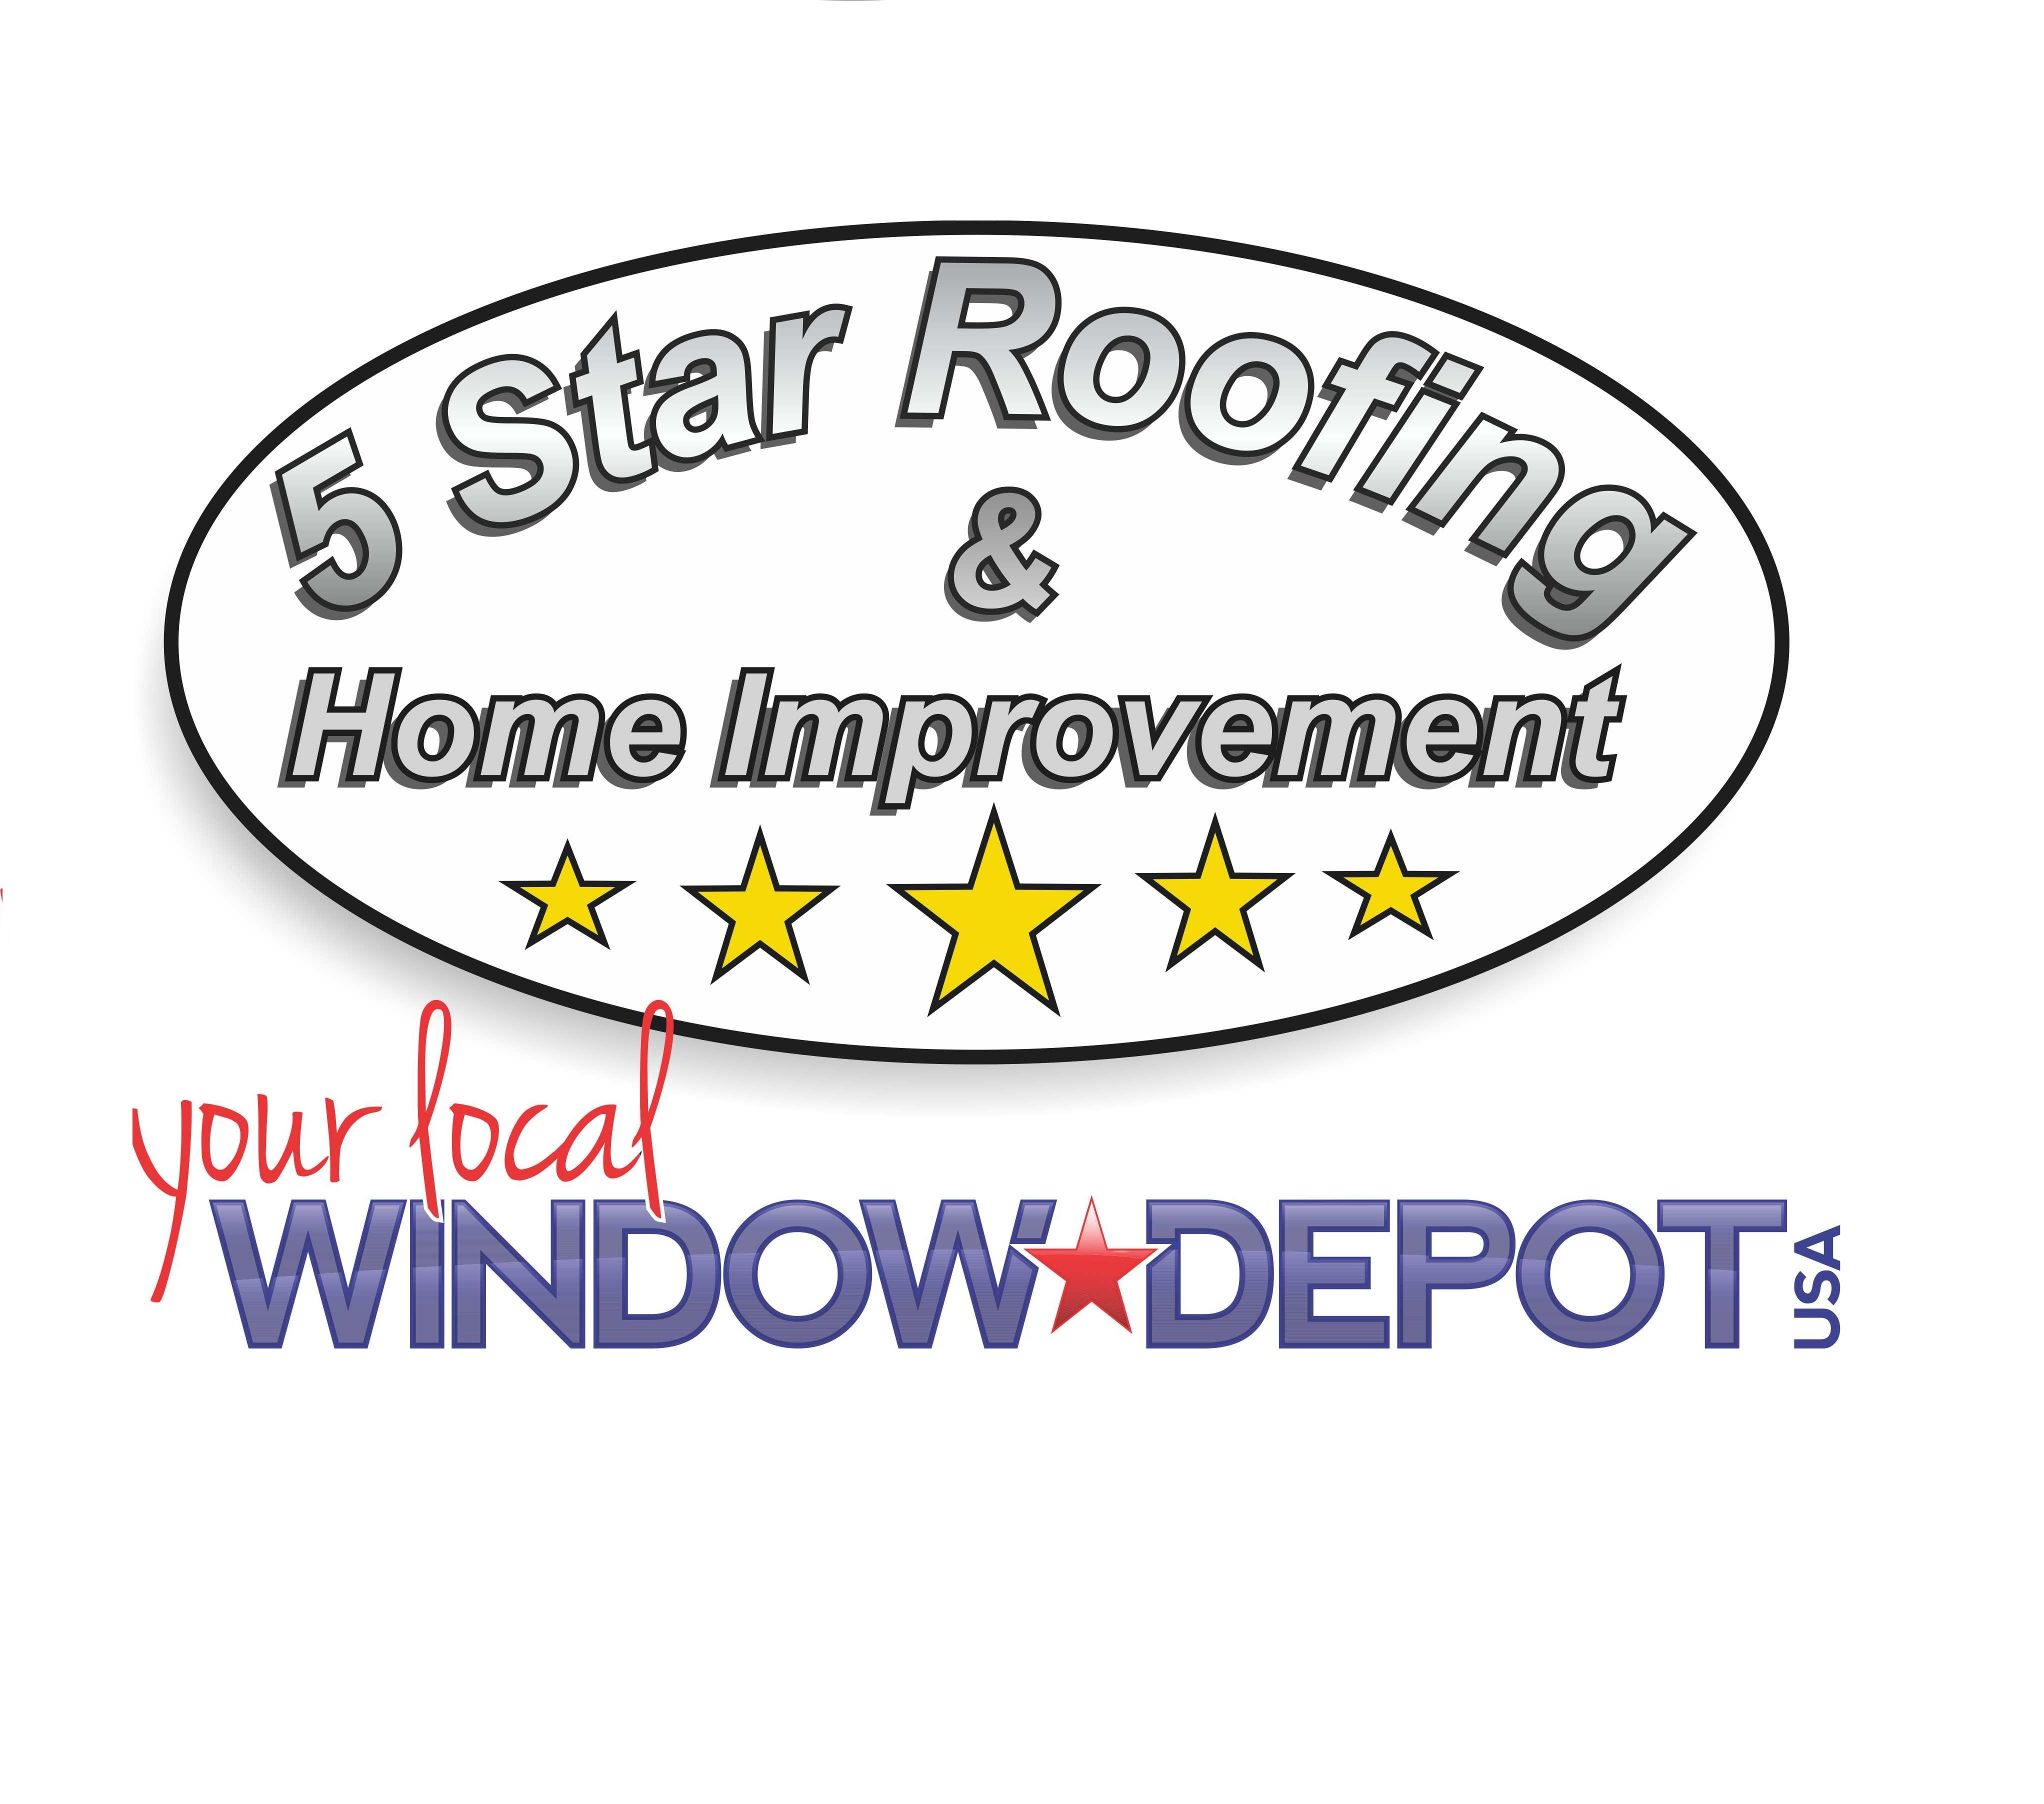 5 Star Roofing Amp Home Improvement Company Information